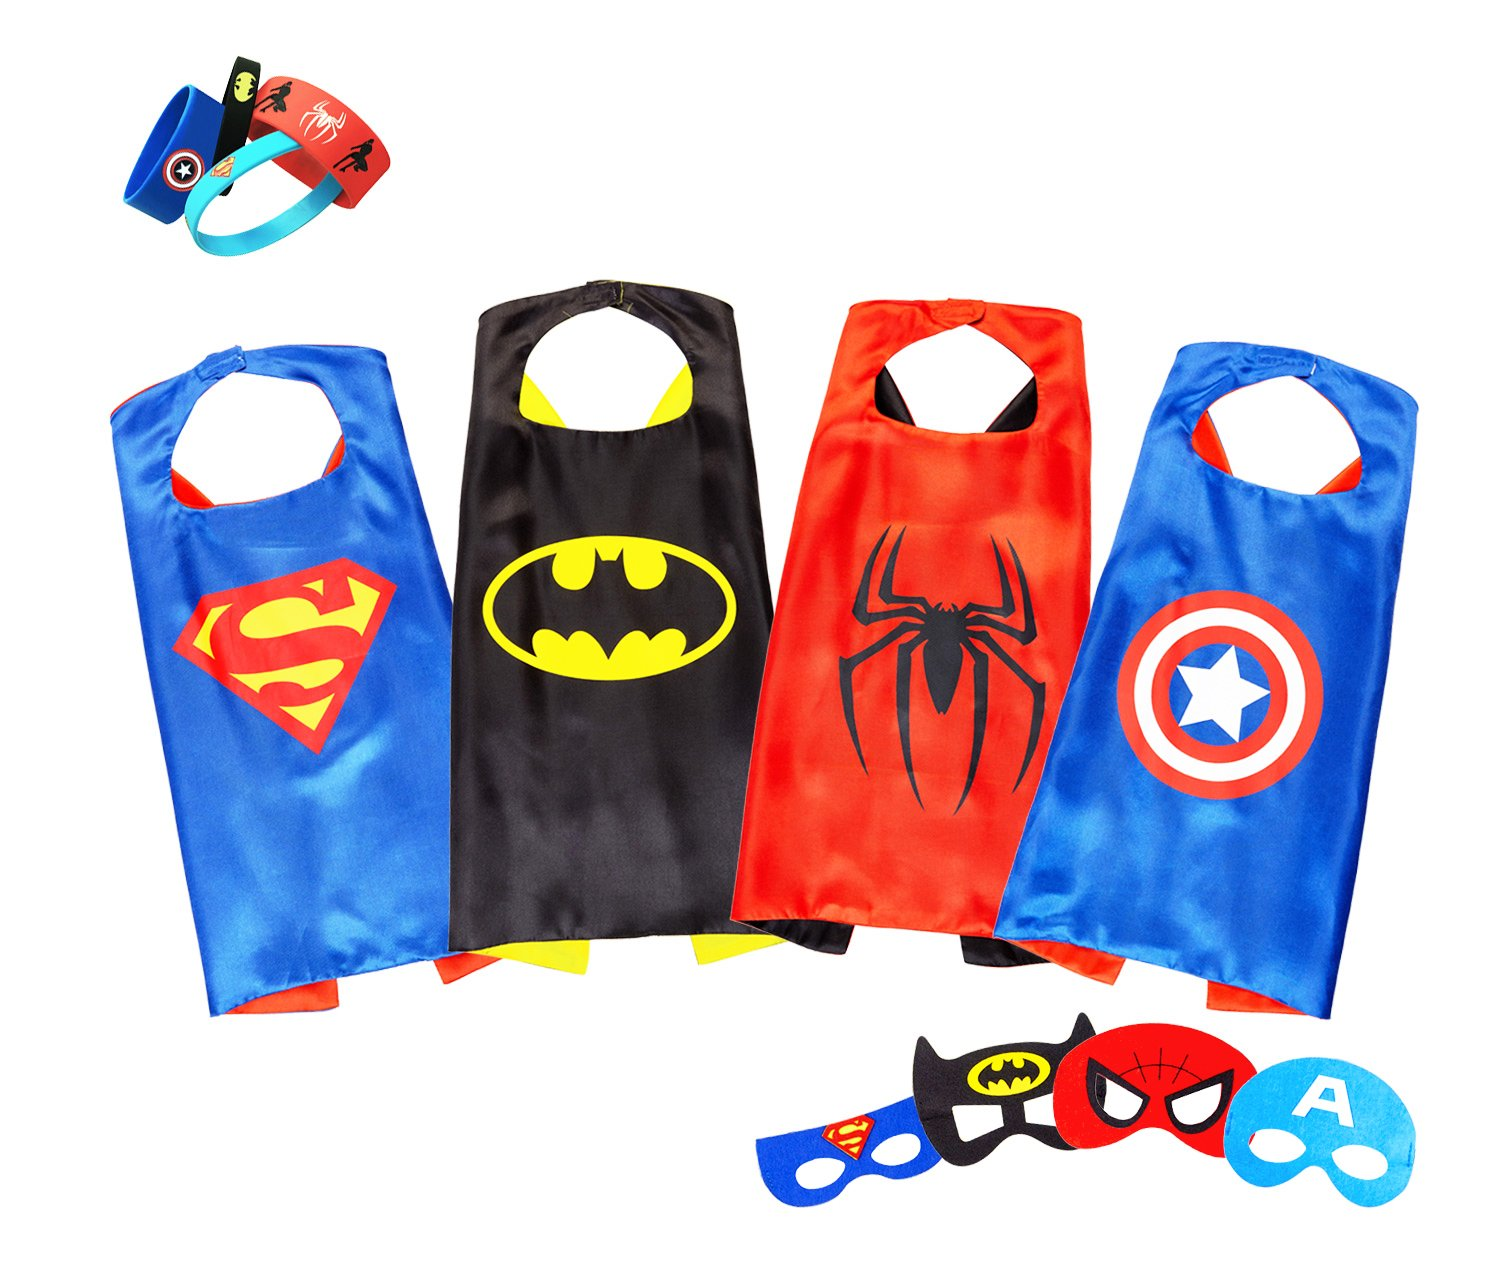 Superhero Capes Masks Dress Up Costumes Adult Teen Kids Boys Girls Party Favors